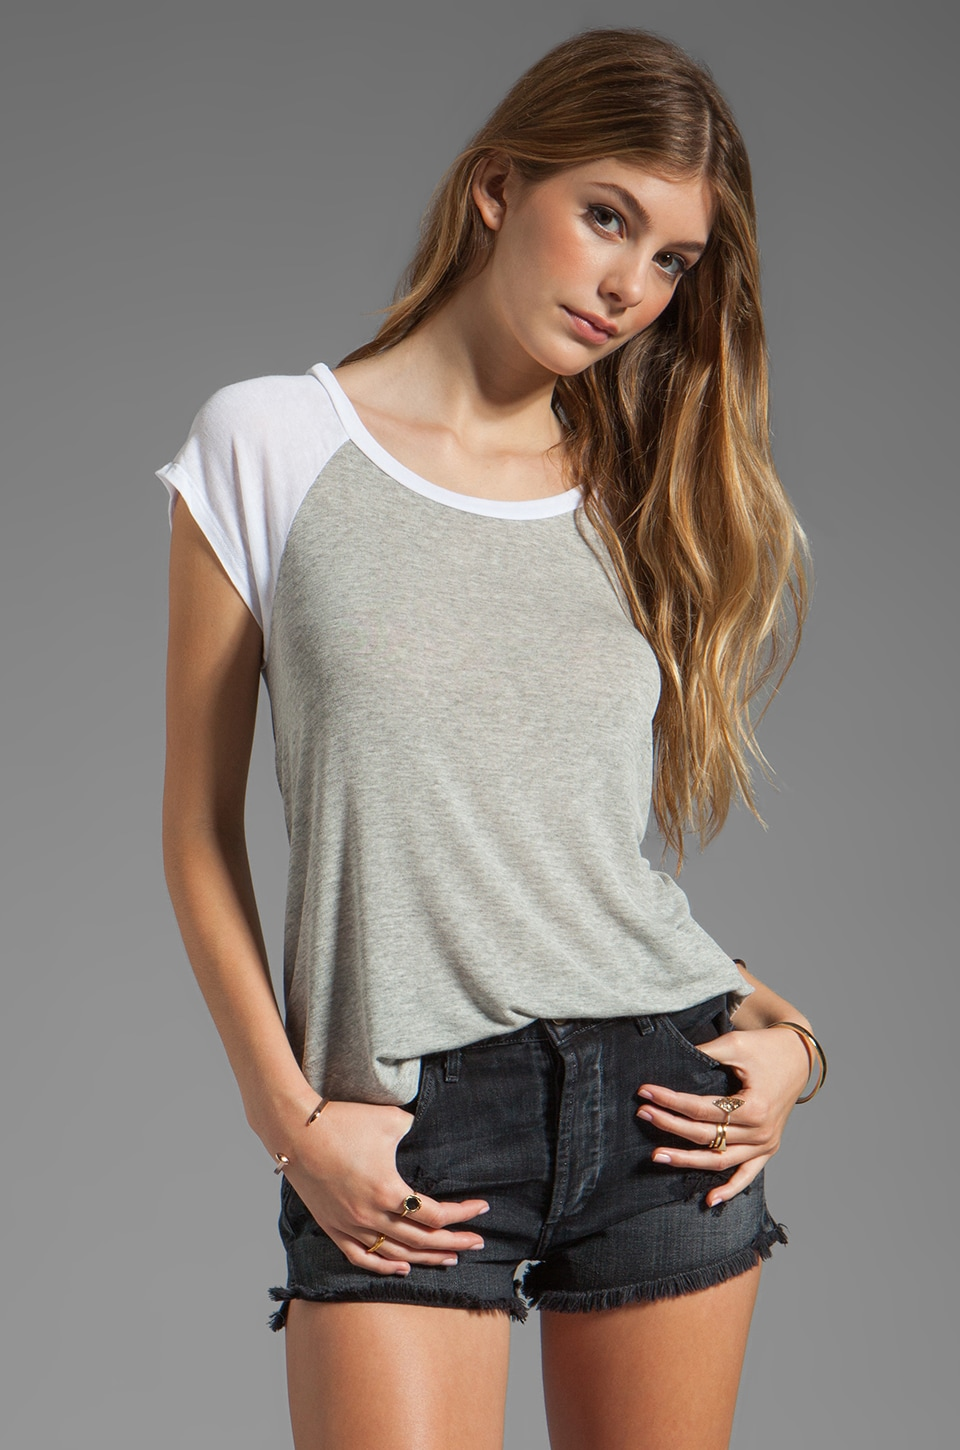 Splendid Drapey Lux Baseball Tee in Heather Grey